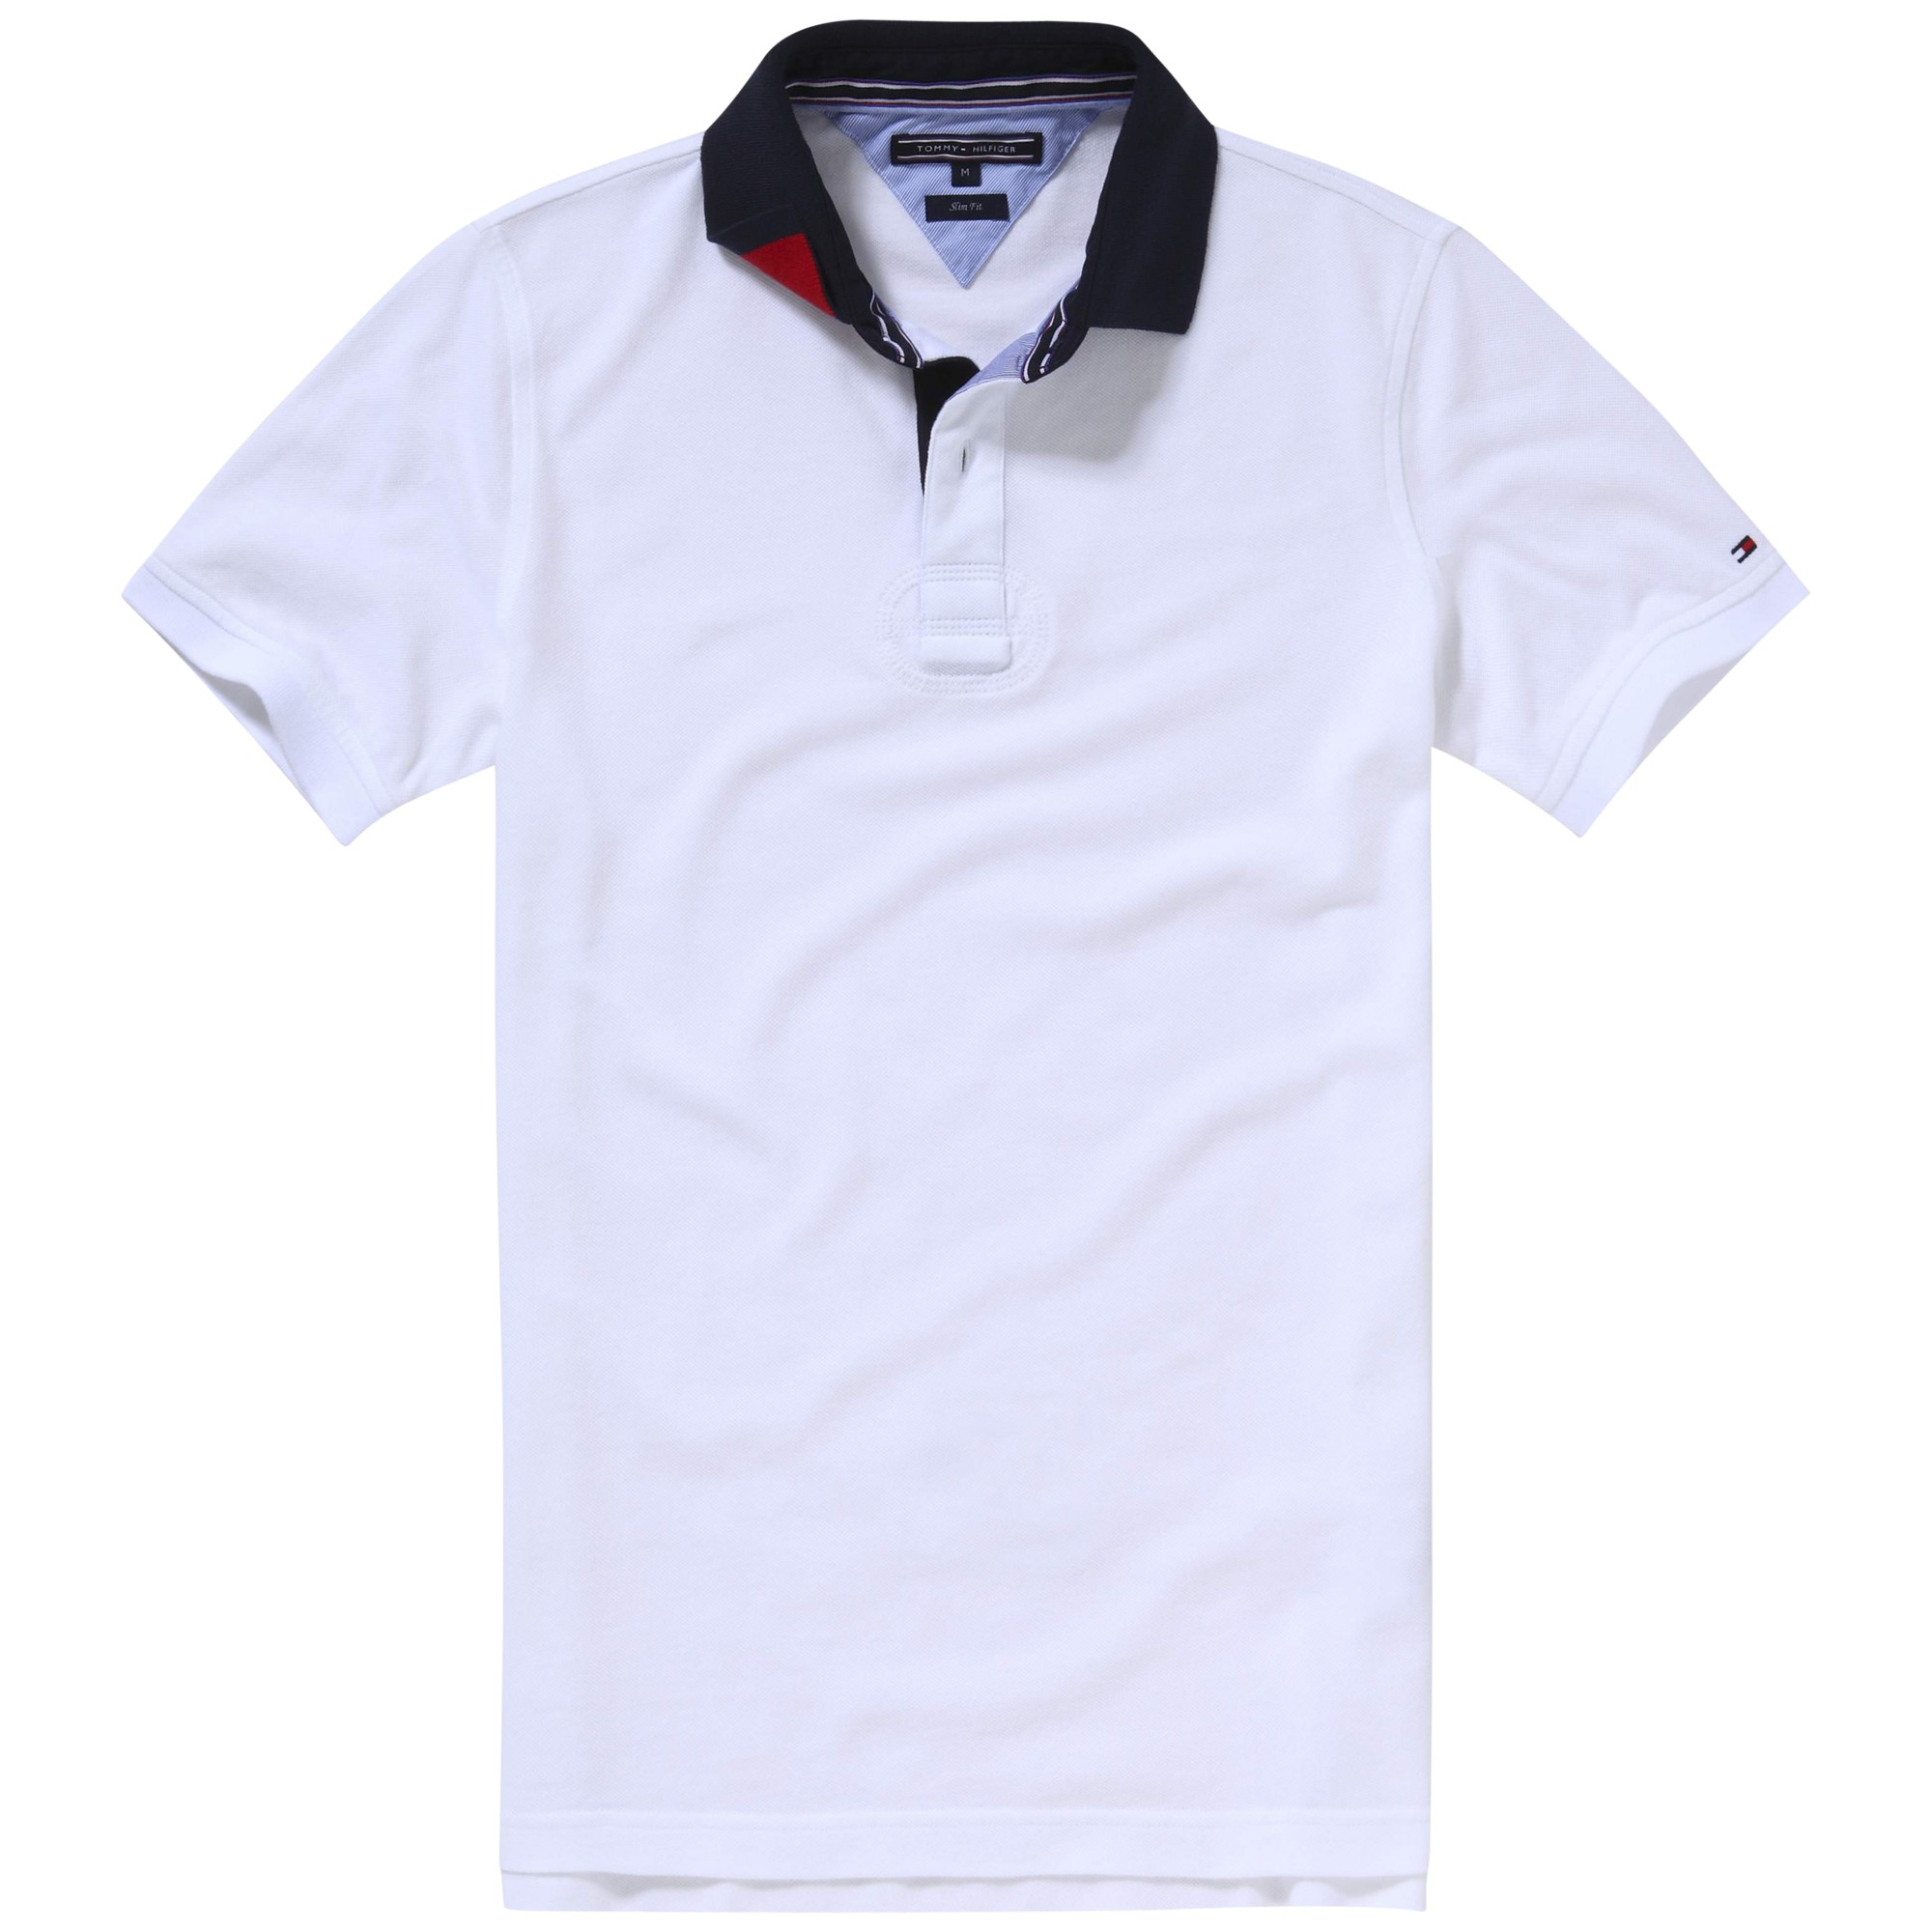 75e37590 Tommy Hilfiger Terence Polo Shirt in White for Men - Lyst